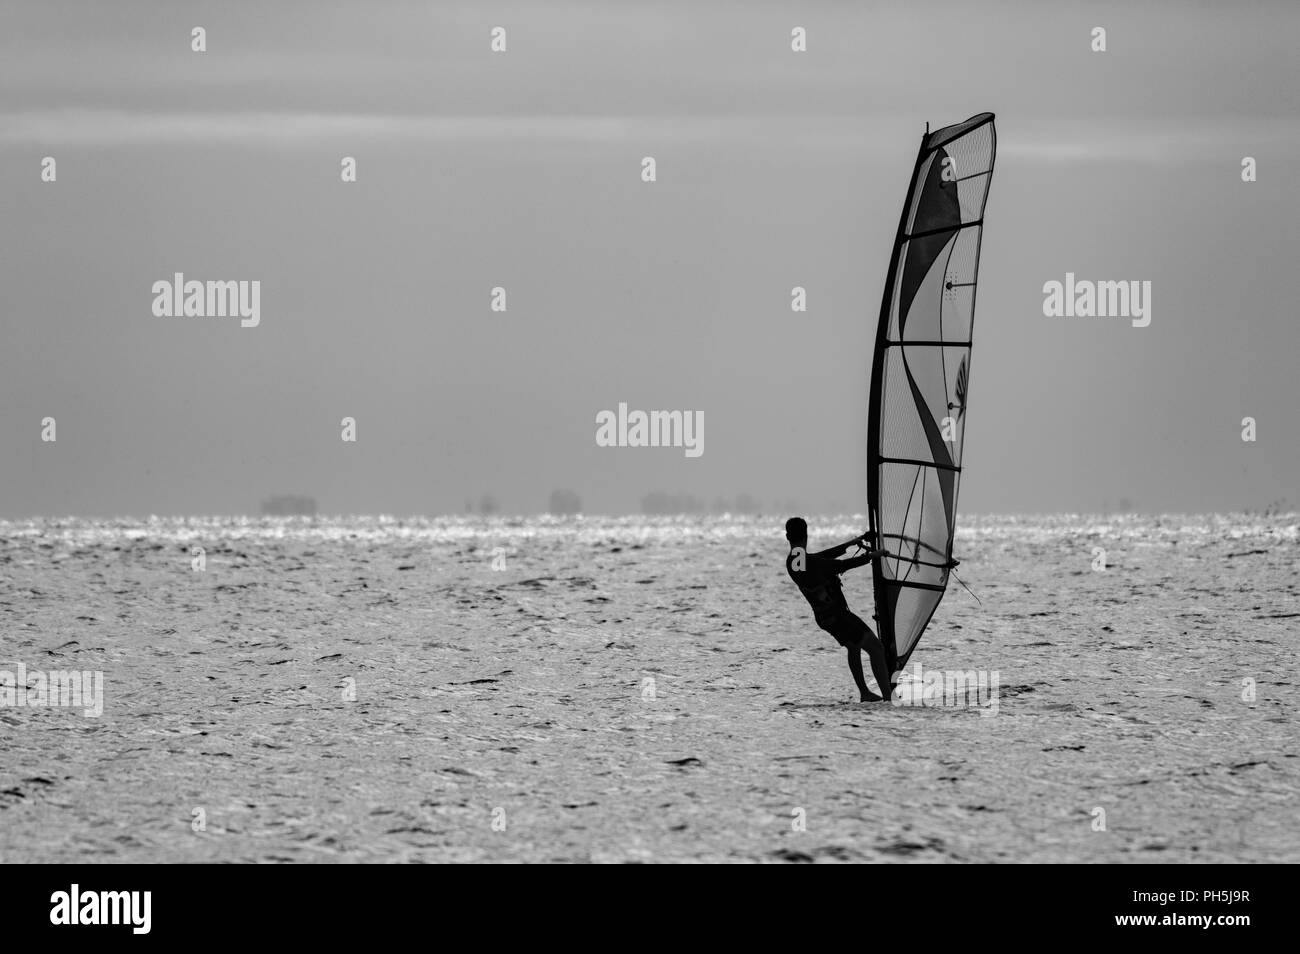 Lone Wind Surfer - Stock Image